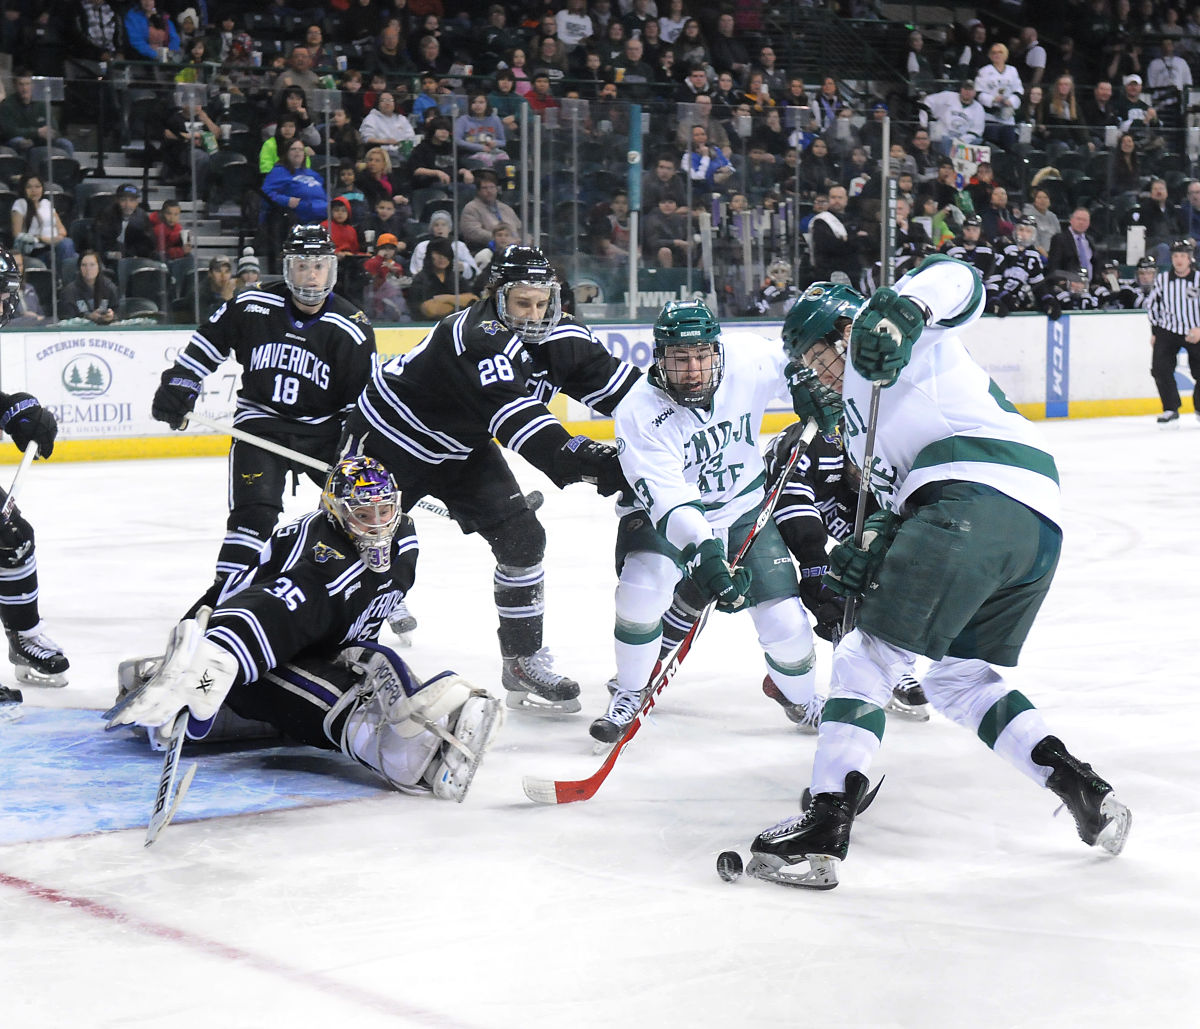 WCHA: MacNaughton Cup Champs Move On To 'second Season'